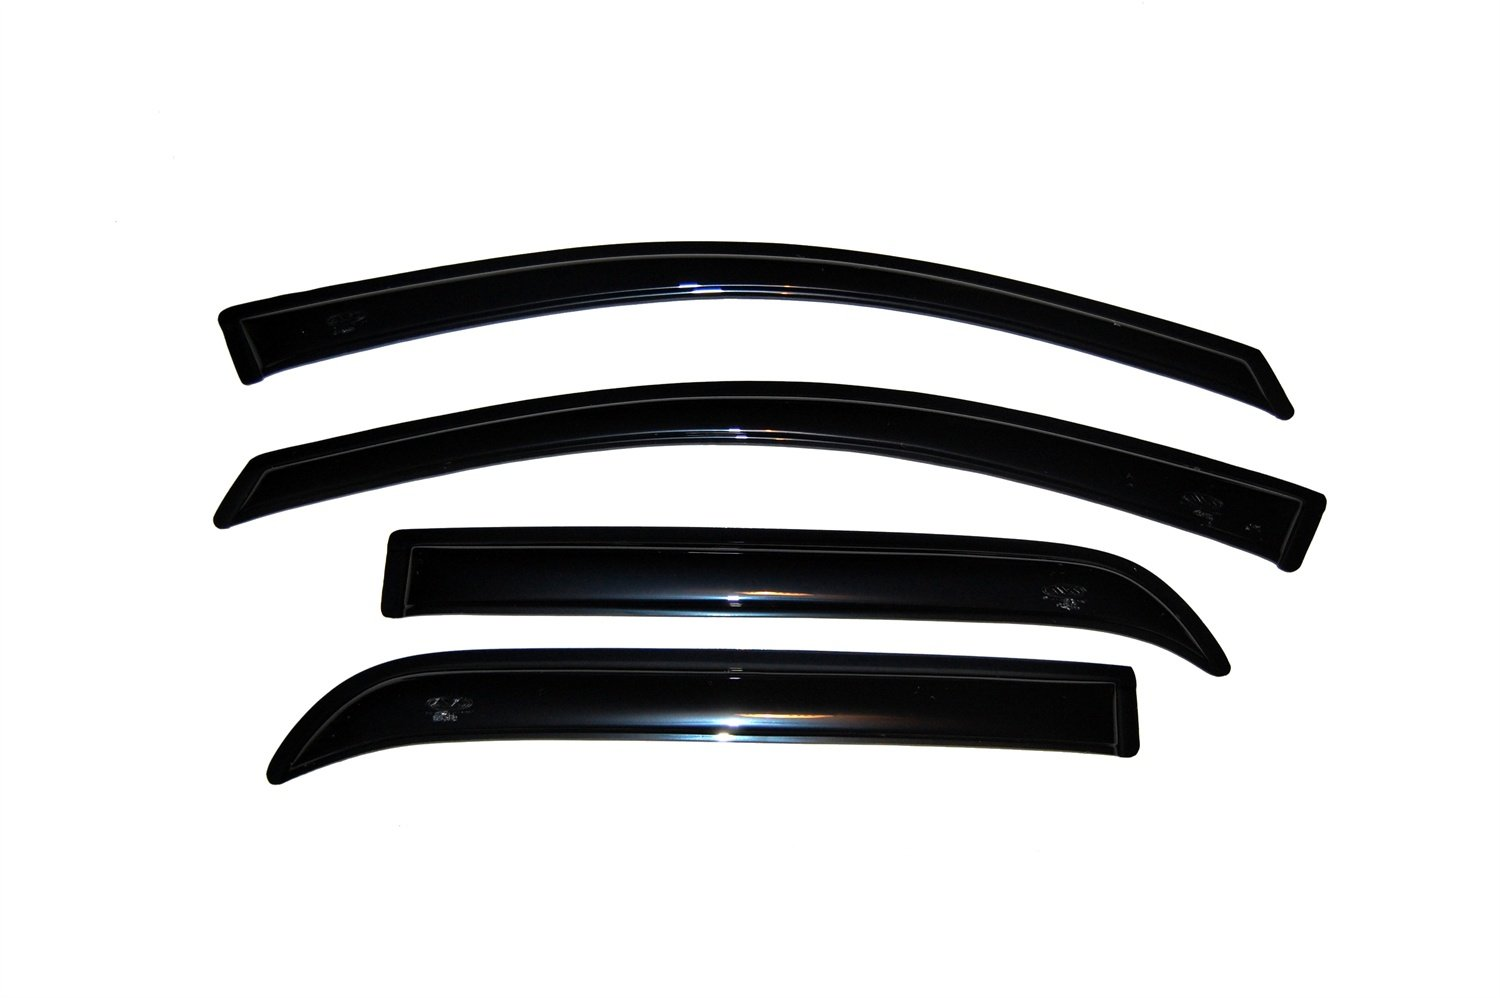 Auto Ventshade 94632 Original Ventvisor Side Window Deflector Dark Smoke, 4-Piece Set for 2007-2016 GMC Acadia, 2017-2018 Acadia Limited, 2007-2010 Saturn Outlook